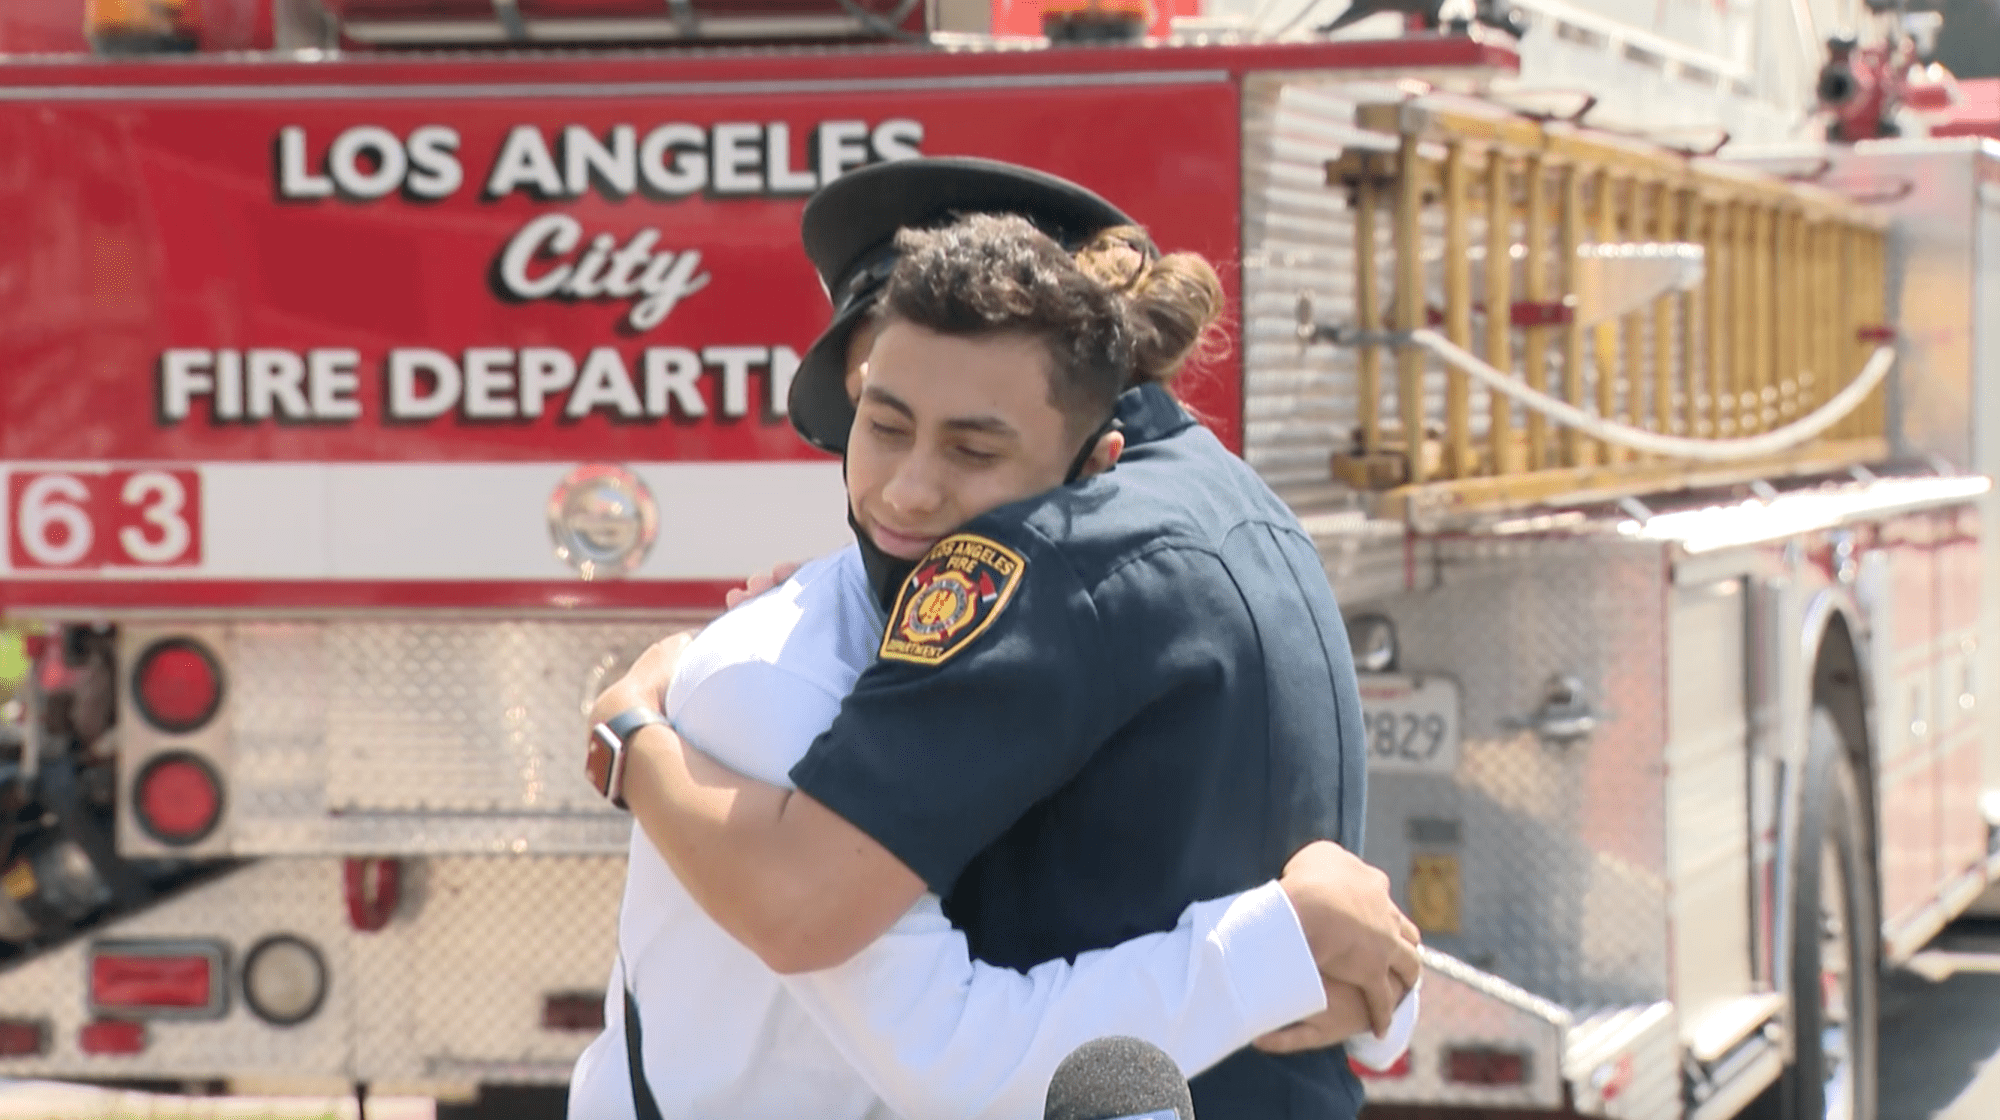 Jacob Perez, 14, hugs the dispatcher who helped save his life in Venice on April 18, 2021. (KTLA)